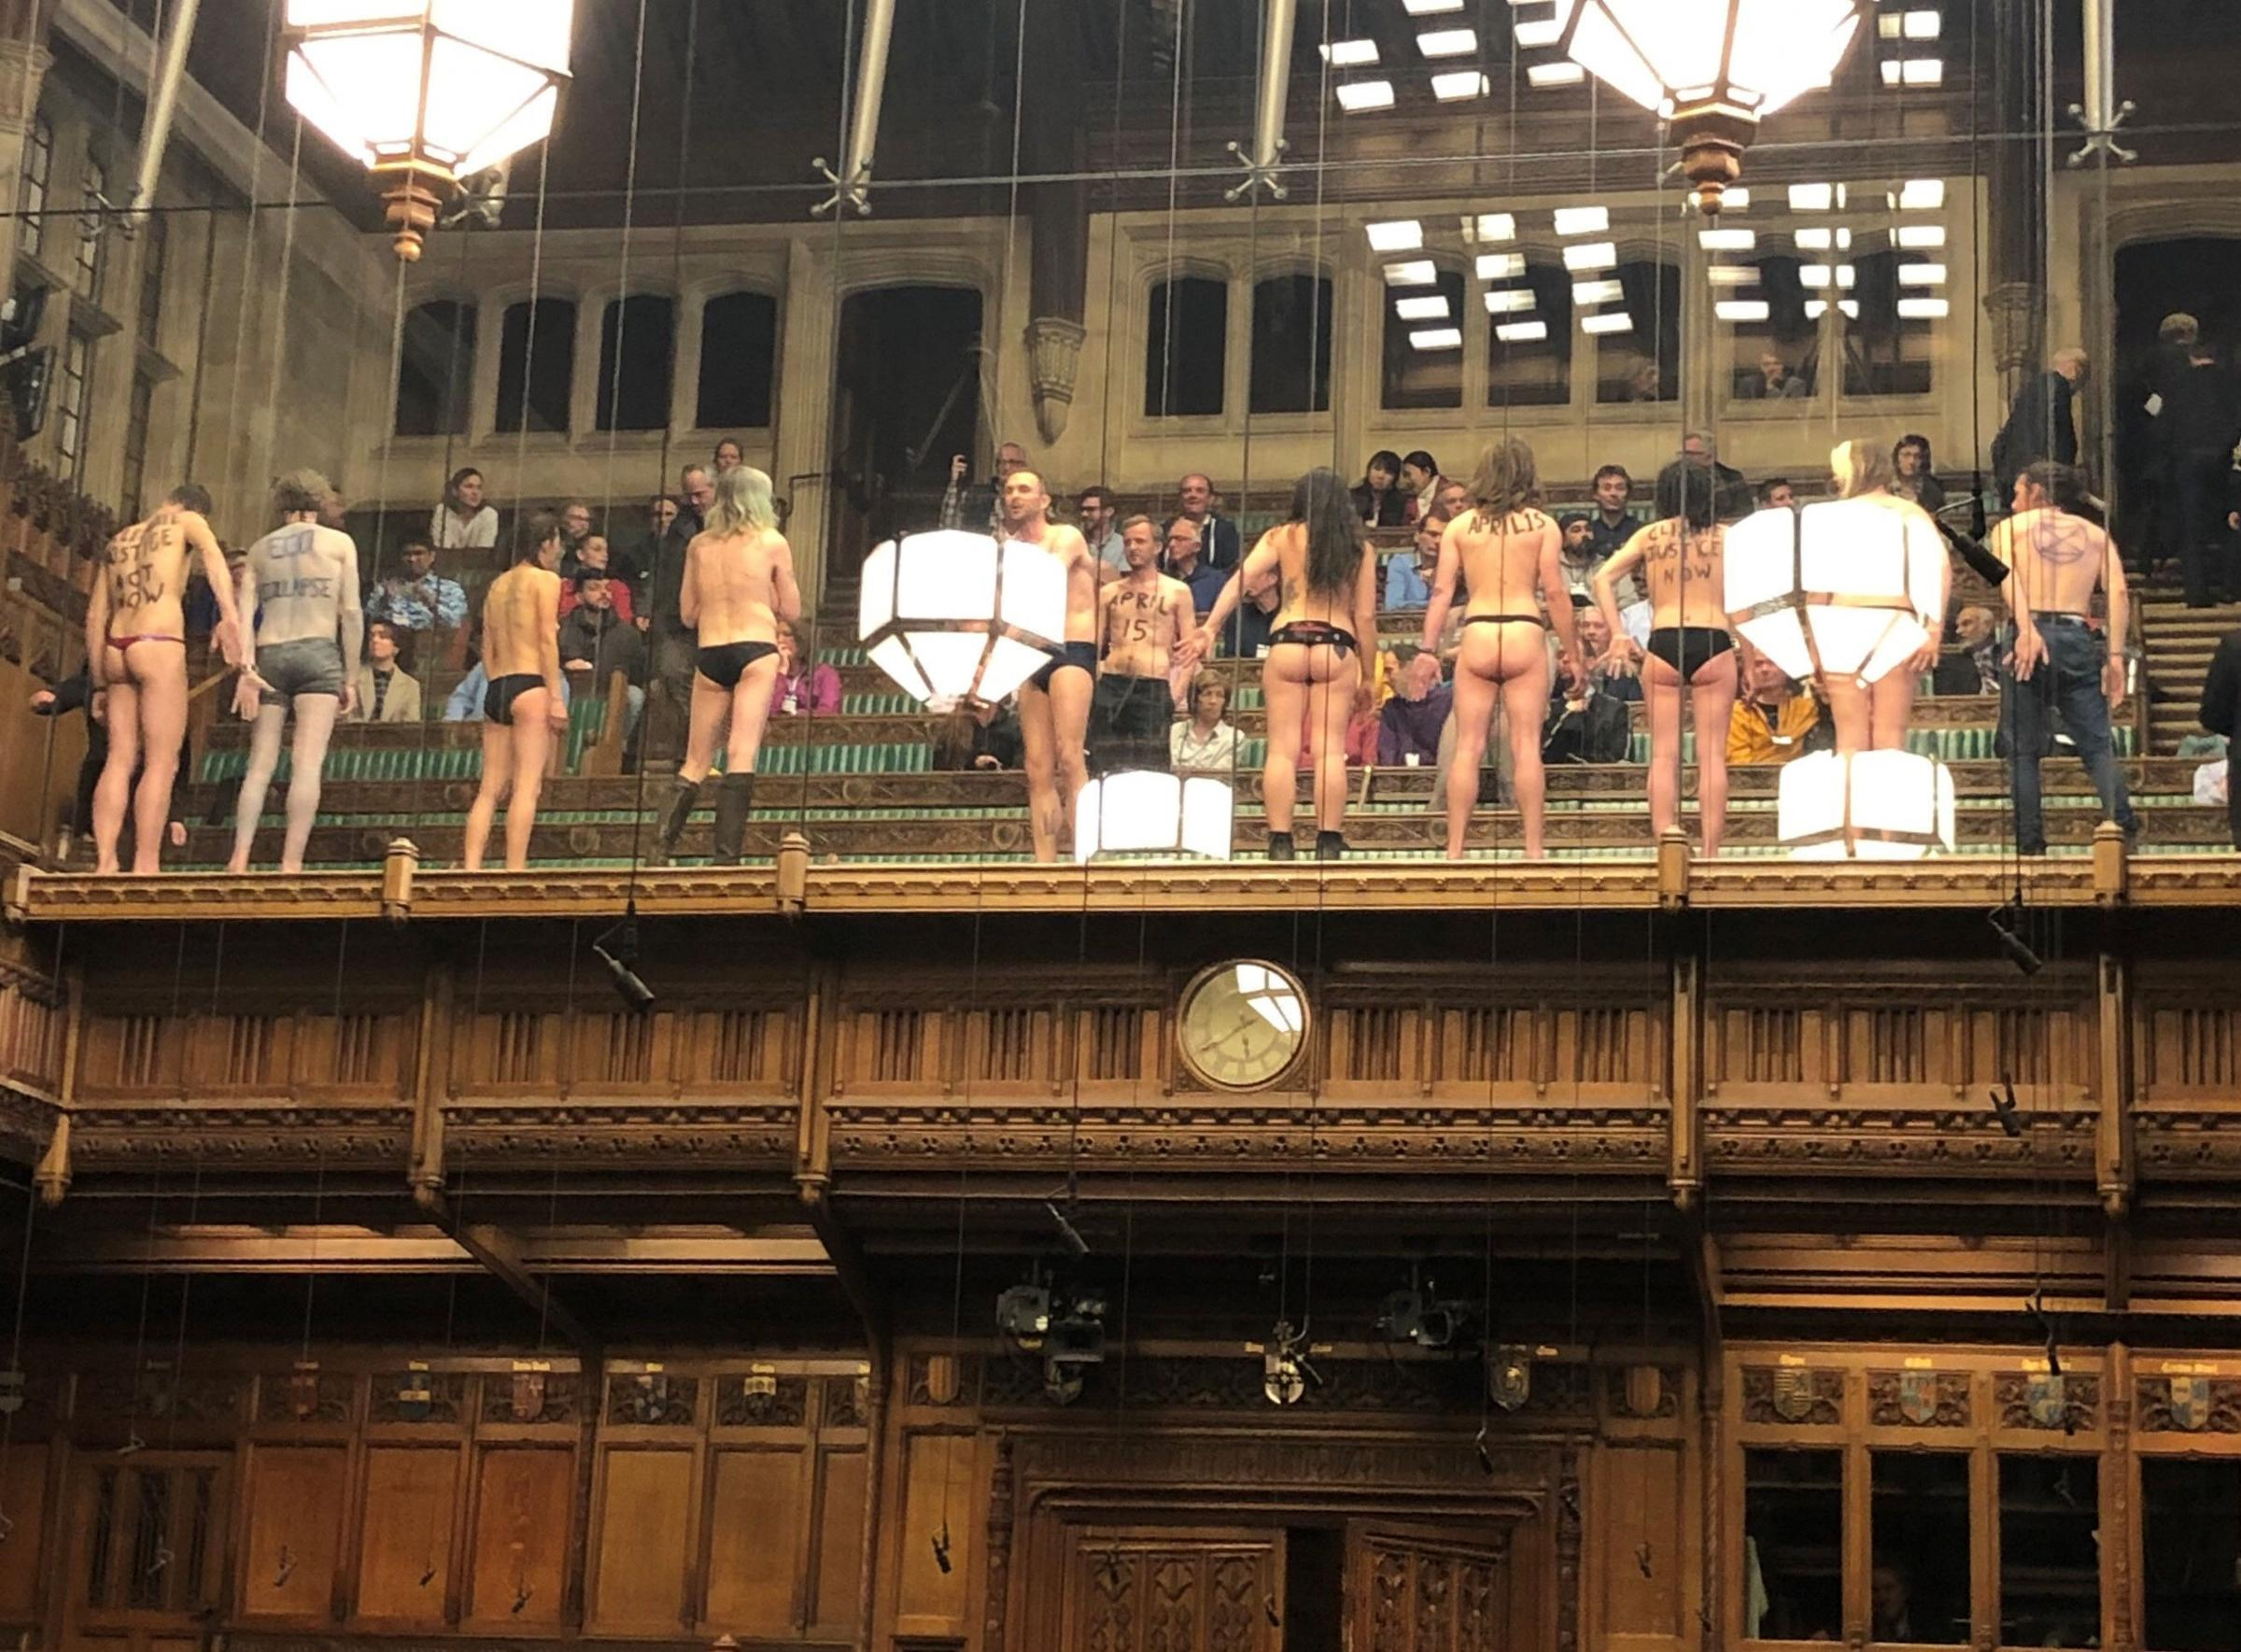 Climate change protesters in the House of Commons, as photographed by MP James Heappey